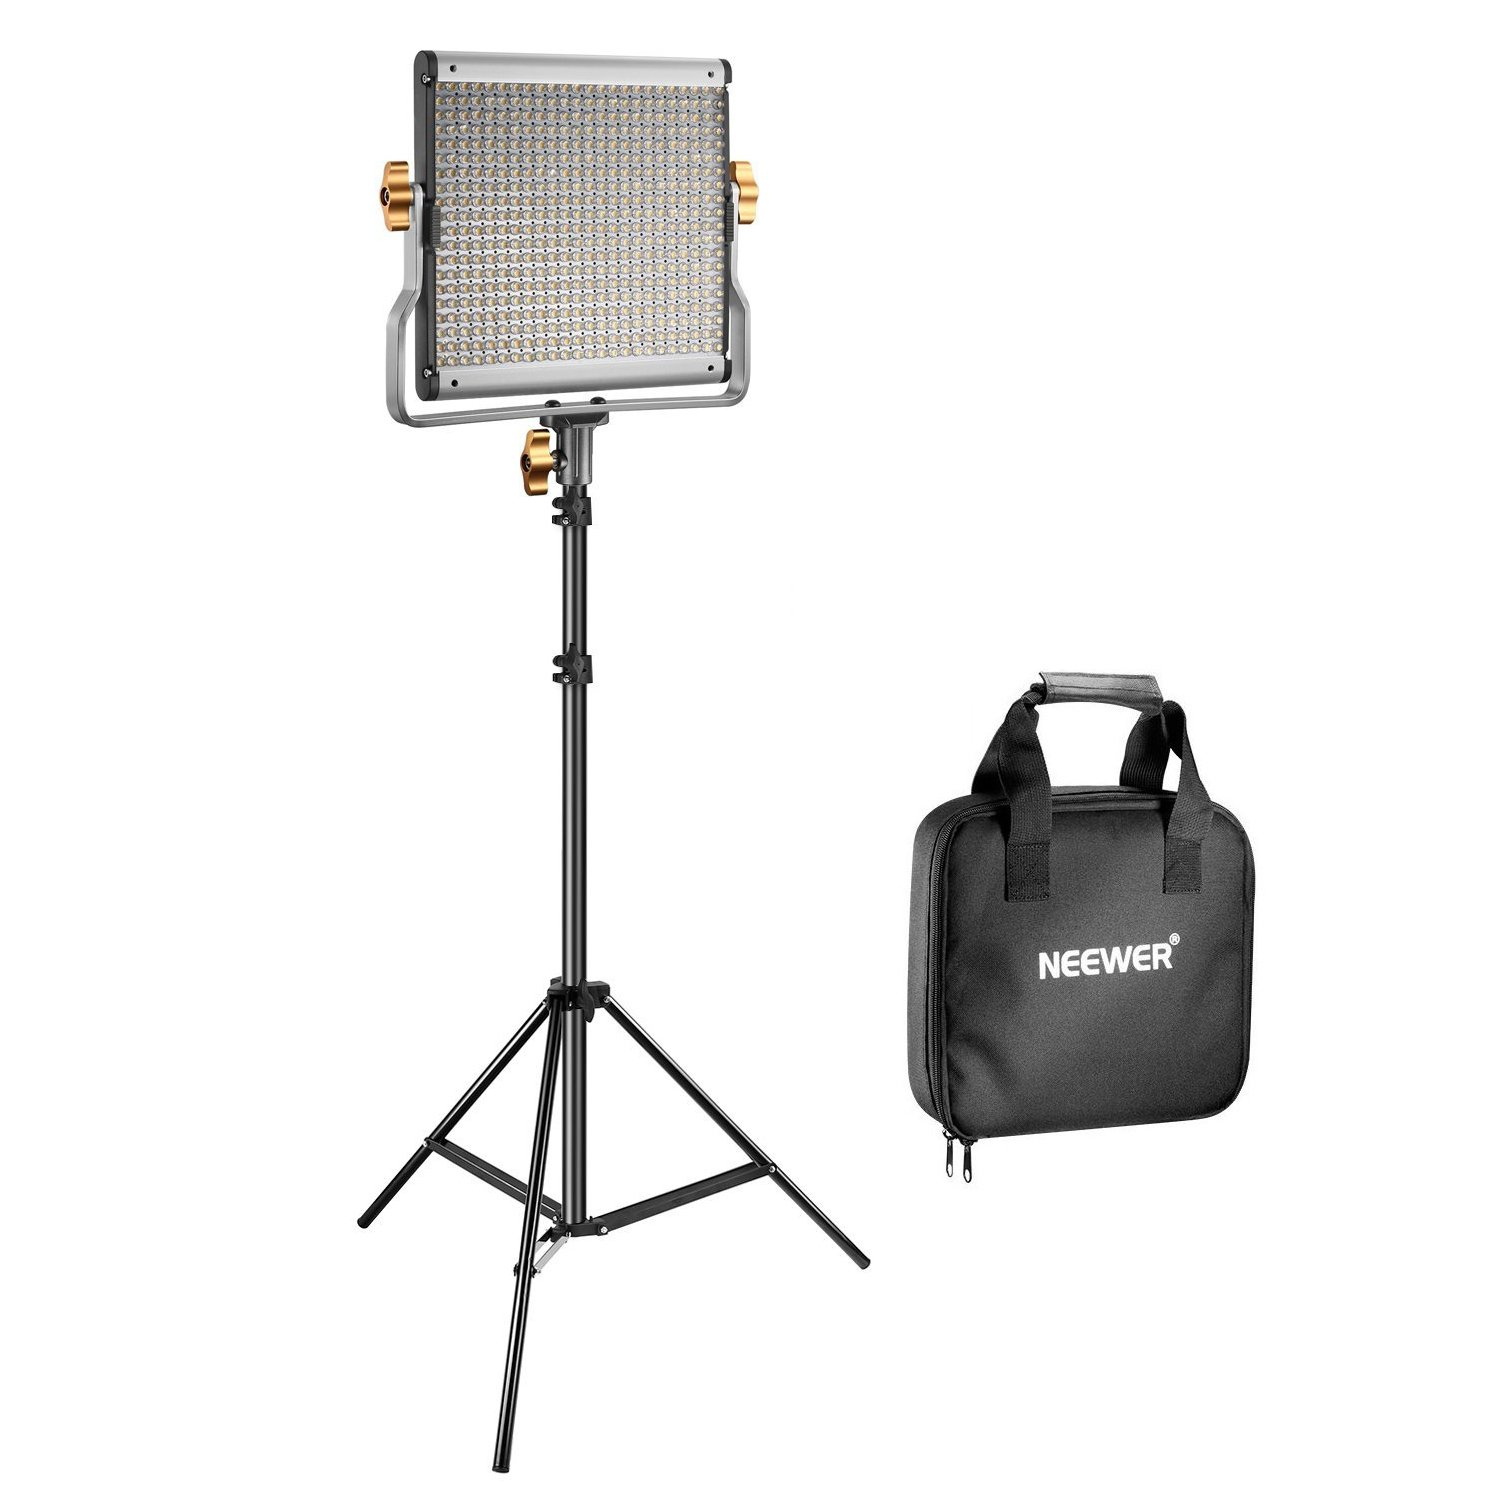 Neewer 480 LED Video Light and Stand Lighting Kit - Dimmable Bi-Color LED Panel with U Bracket (3200-5600K, CRI 96+) and 75-Inch Light Stand for Photo Studio Portrait, YouTube Video Photography